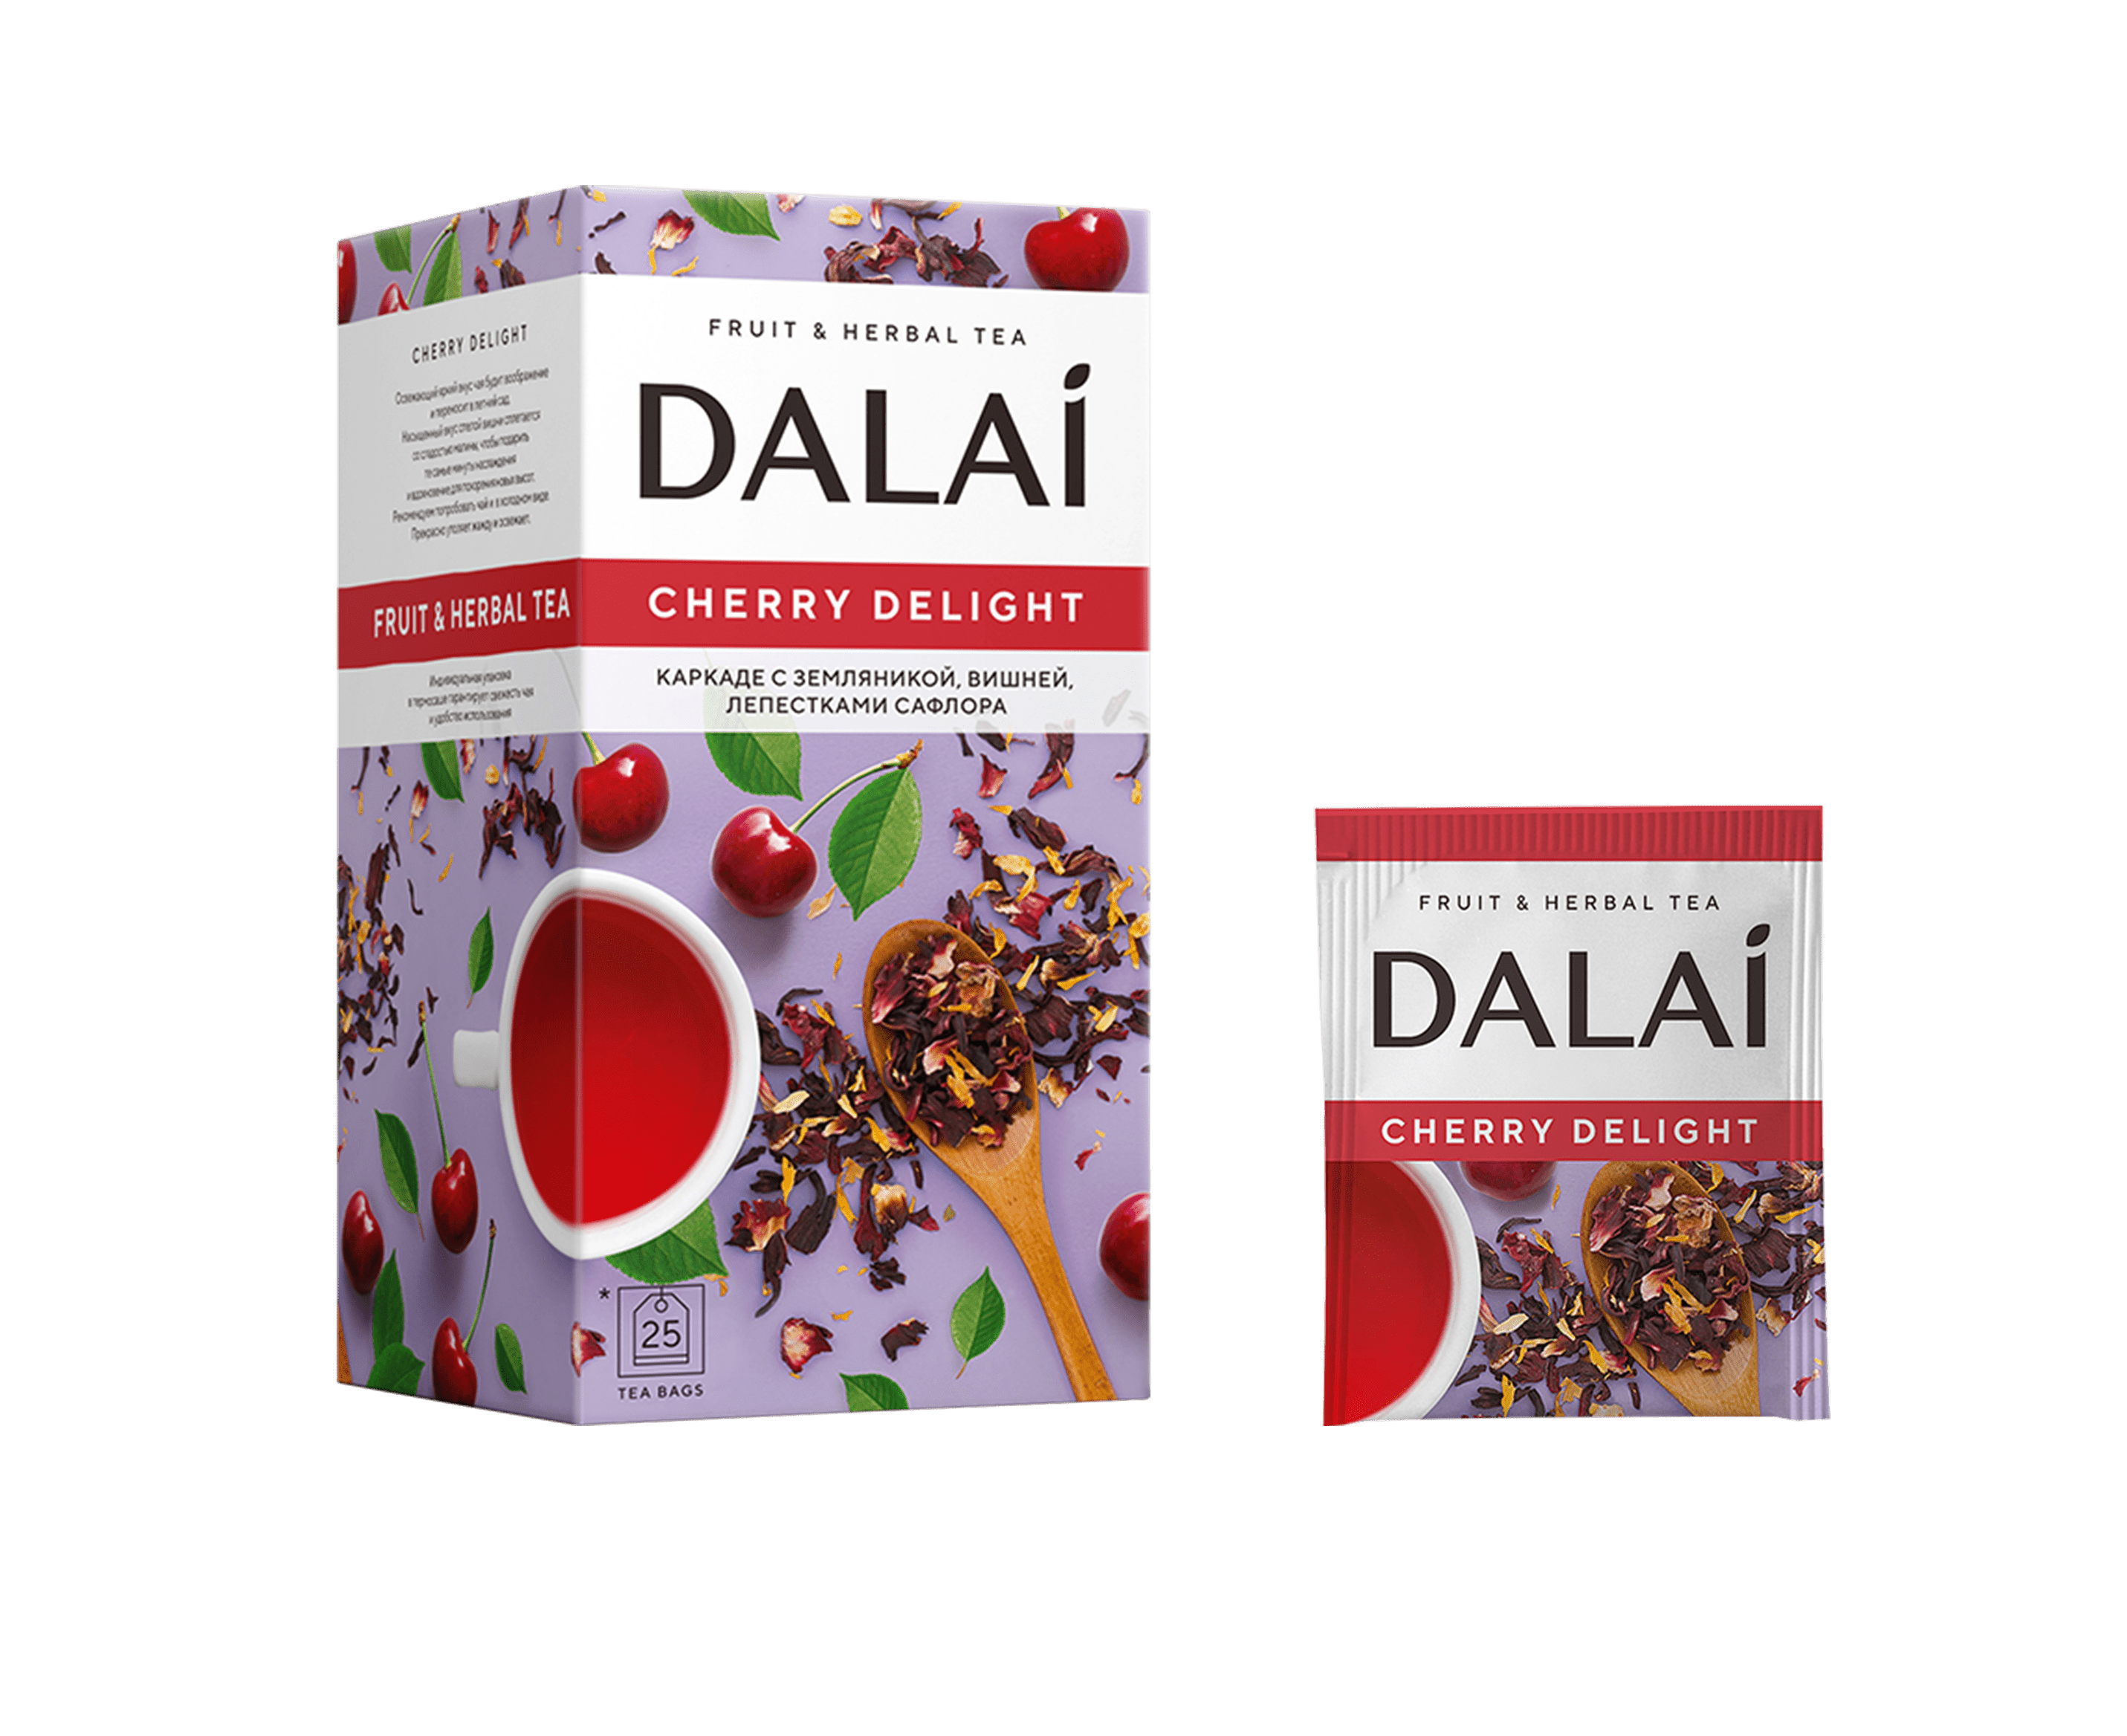 dalai cherry delight